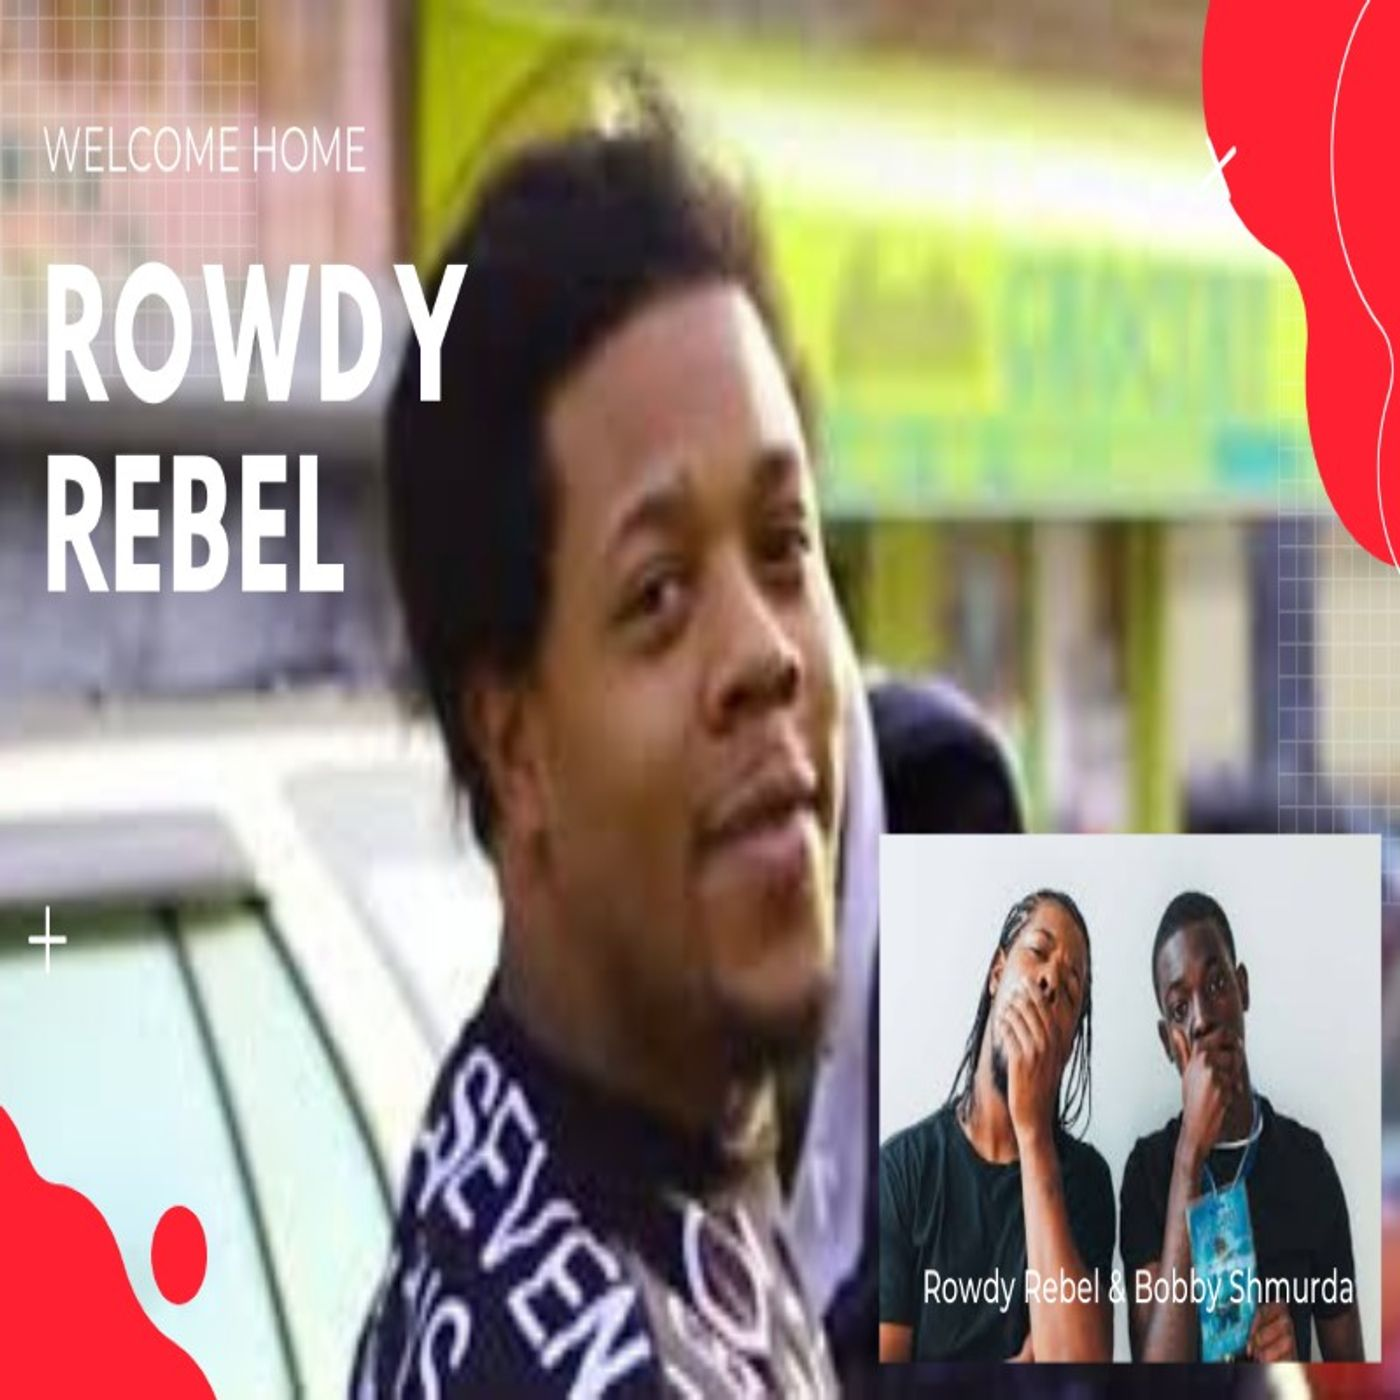 Episode 31 - GS9 Member Rowdy Rebel Released From Prison After Serving Seven Years Behind Bars